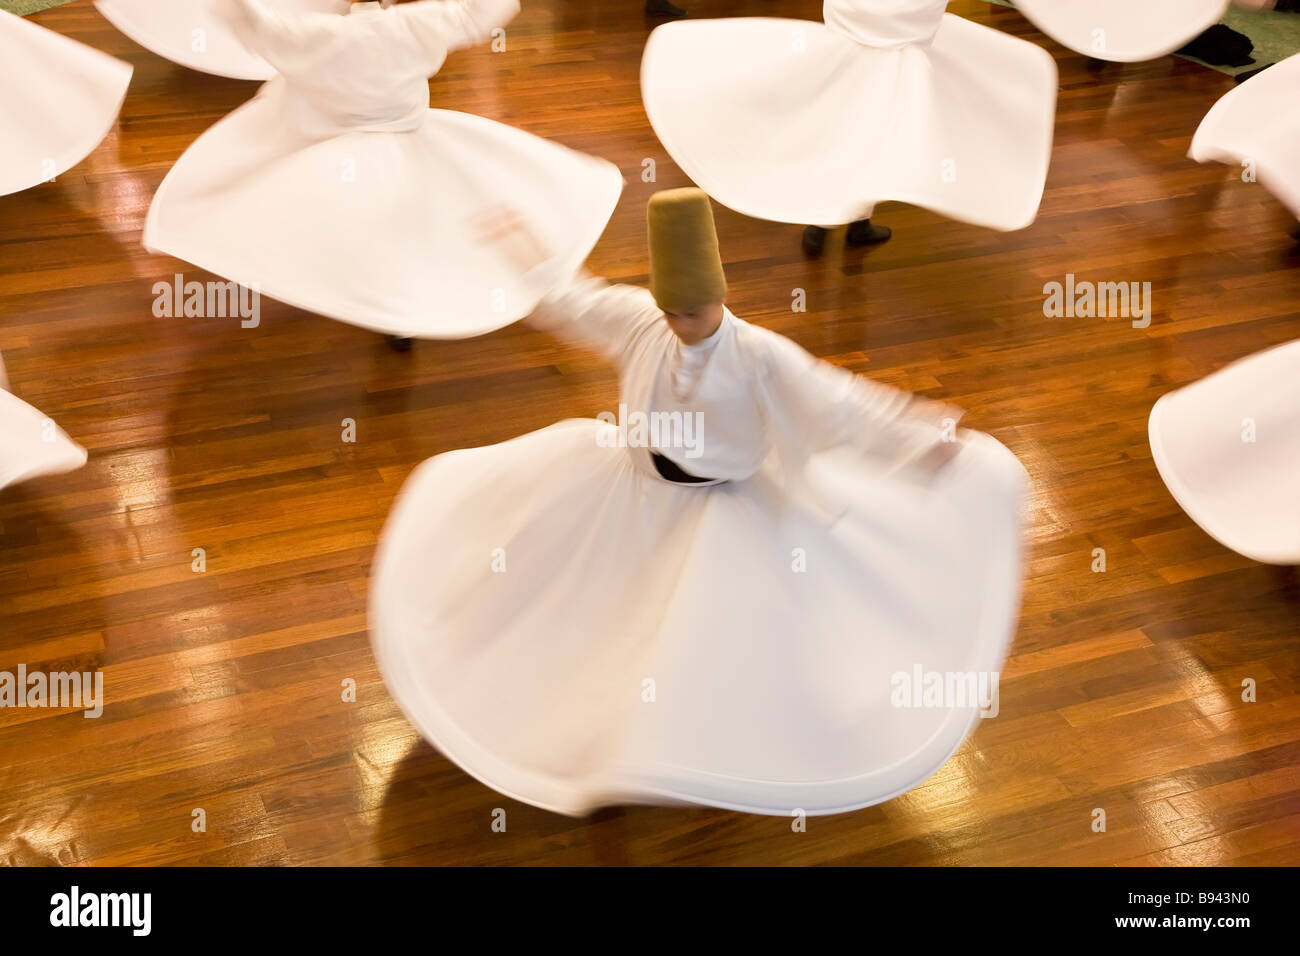 Whirling Dervishes Istanbul Turkey - Stock Image